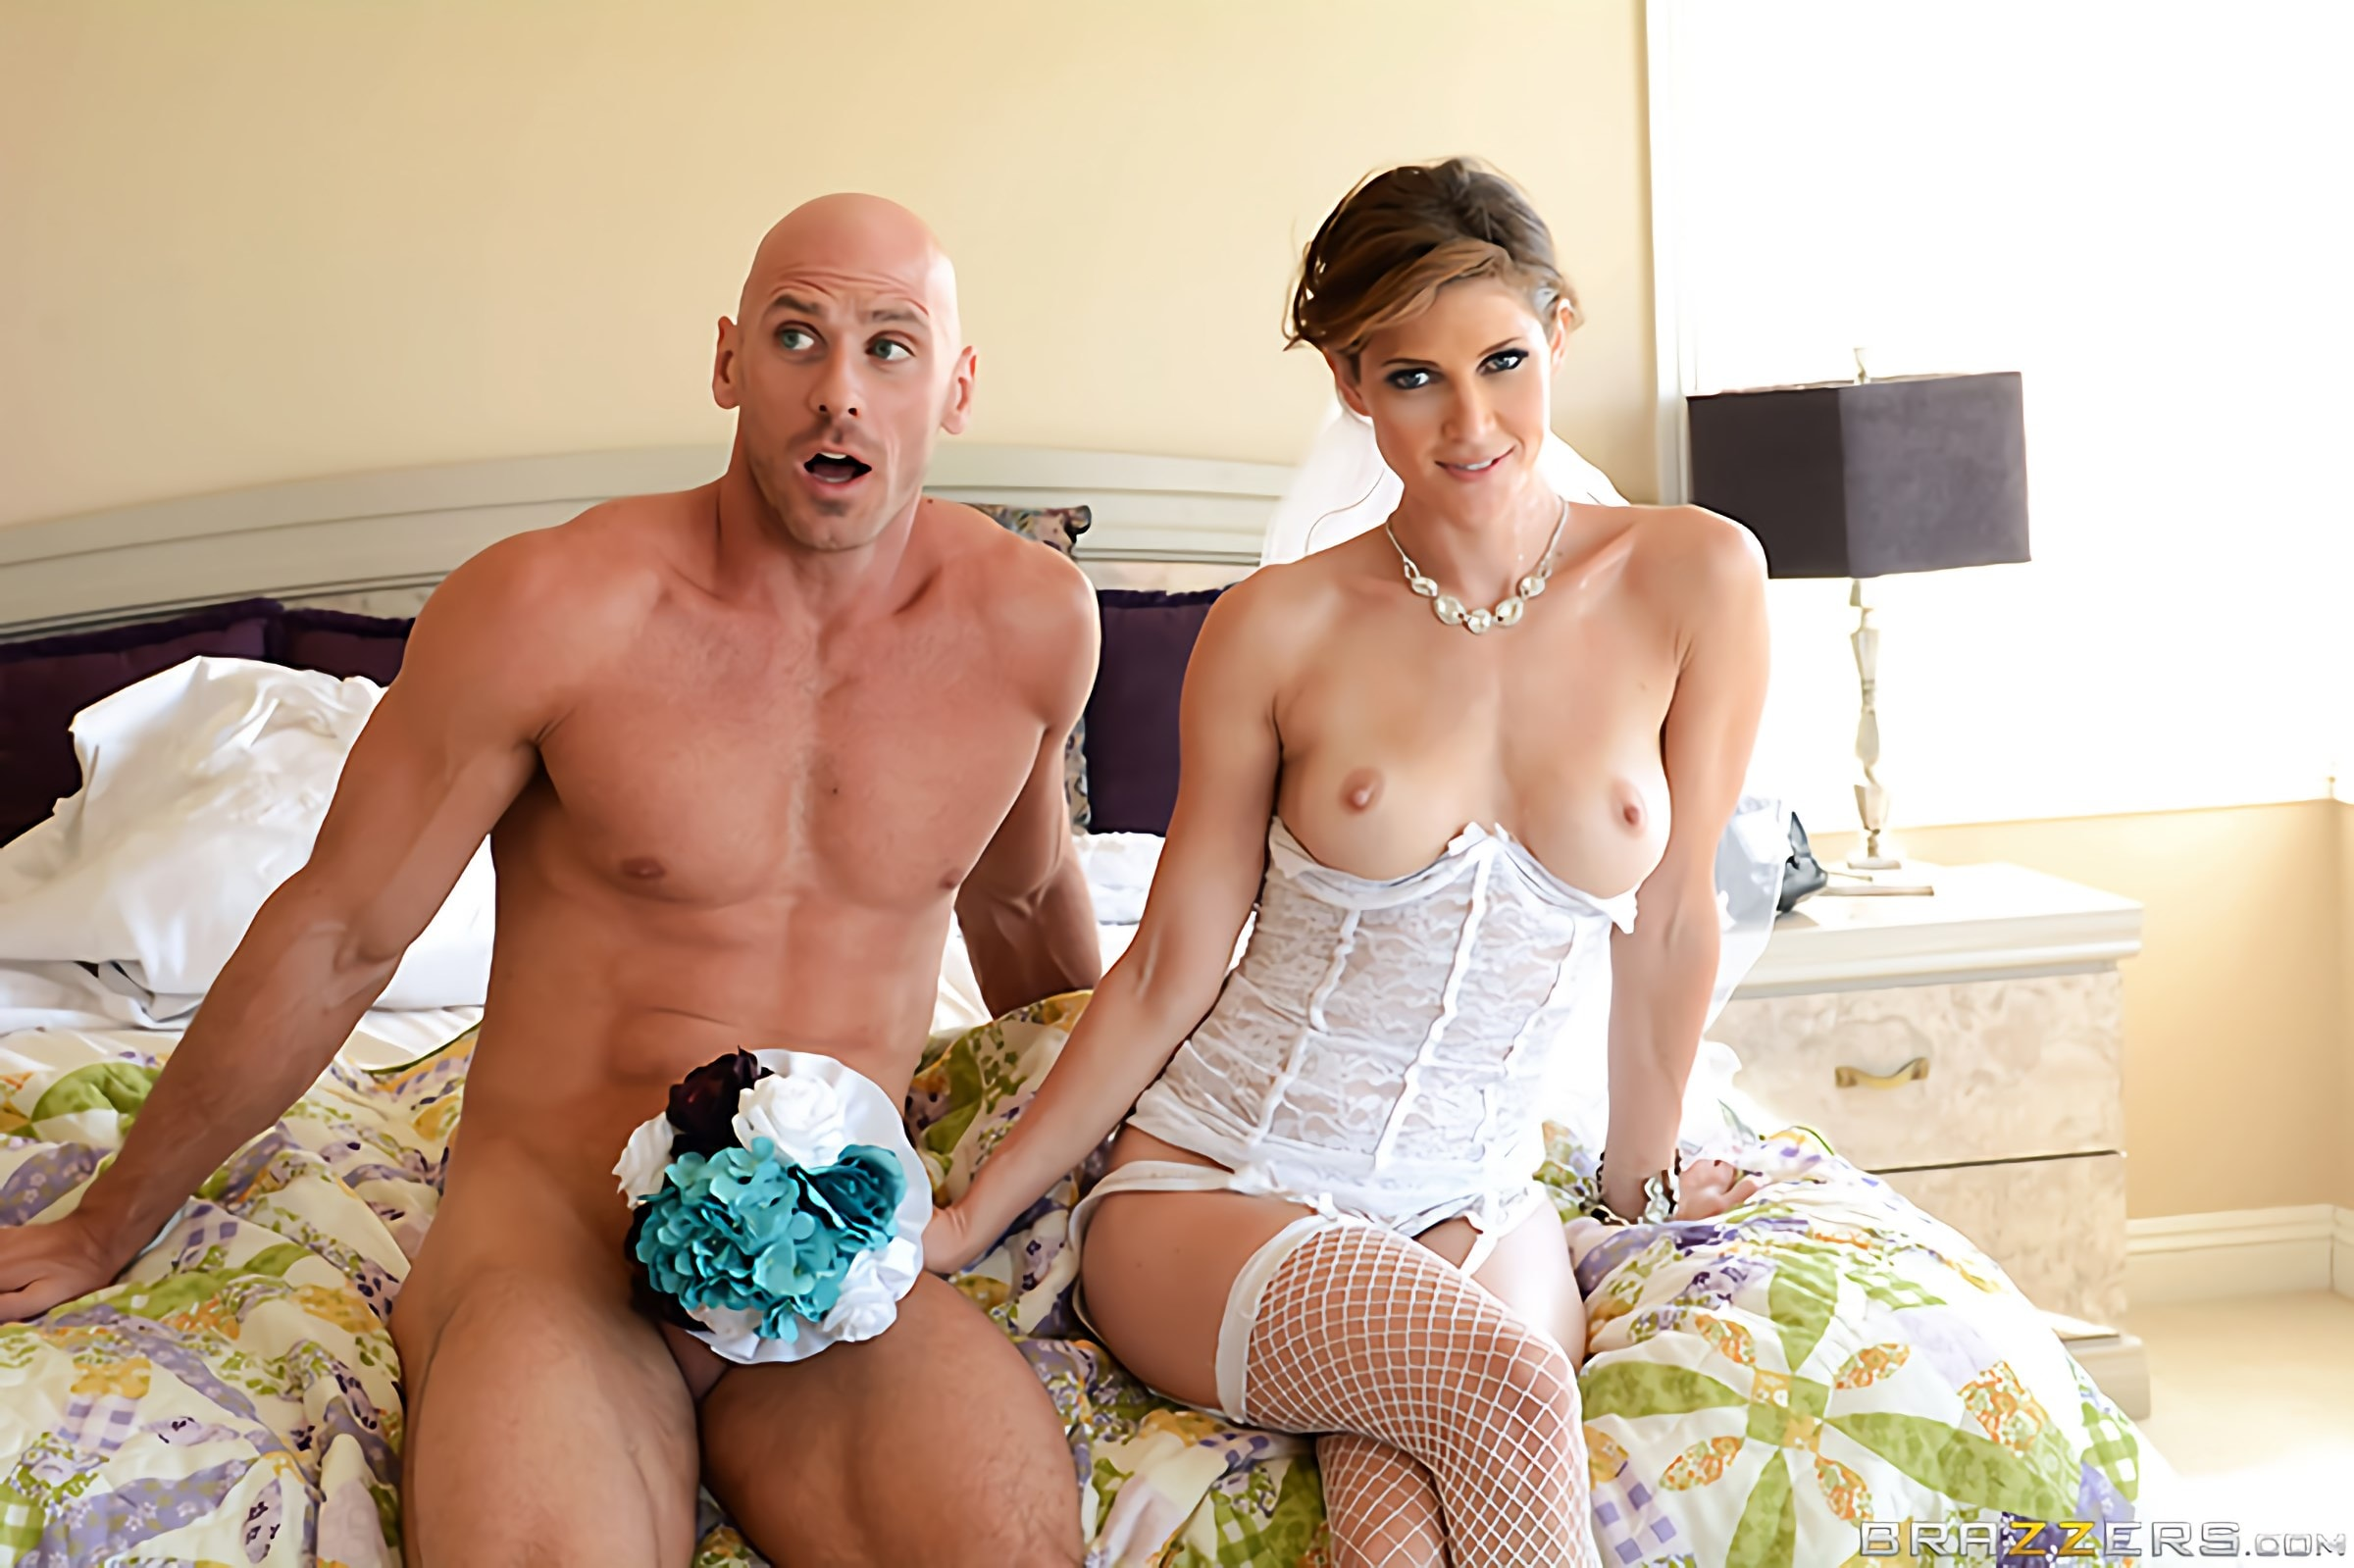 Real wife stories jenni lee